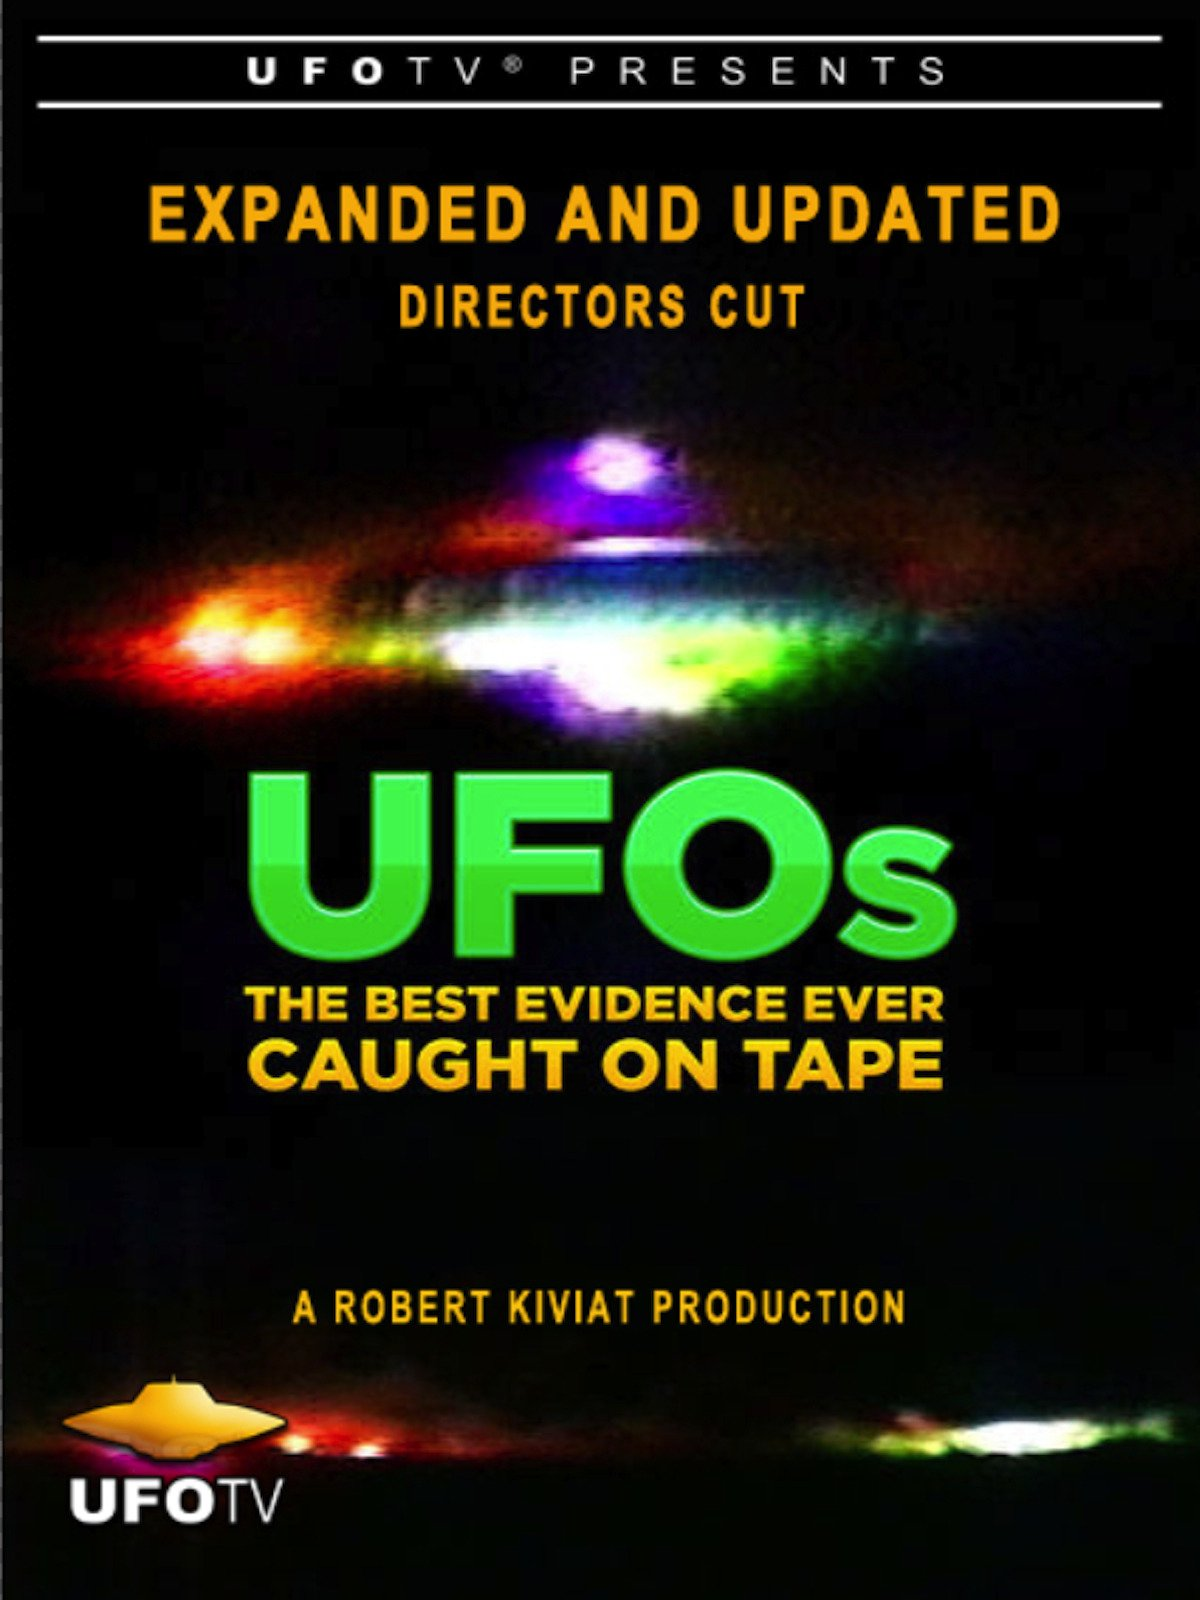 UFOs the Best Evidence Ever Caught On Tape